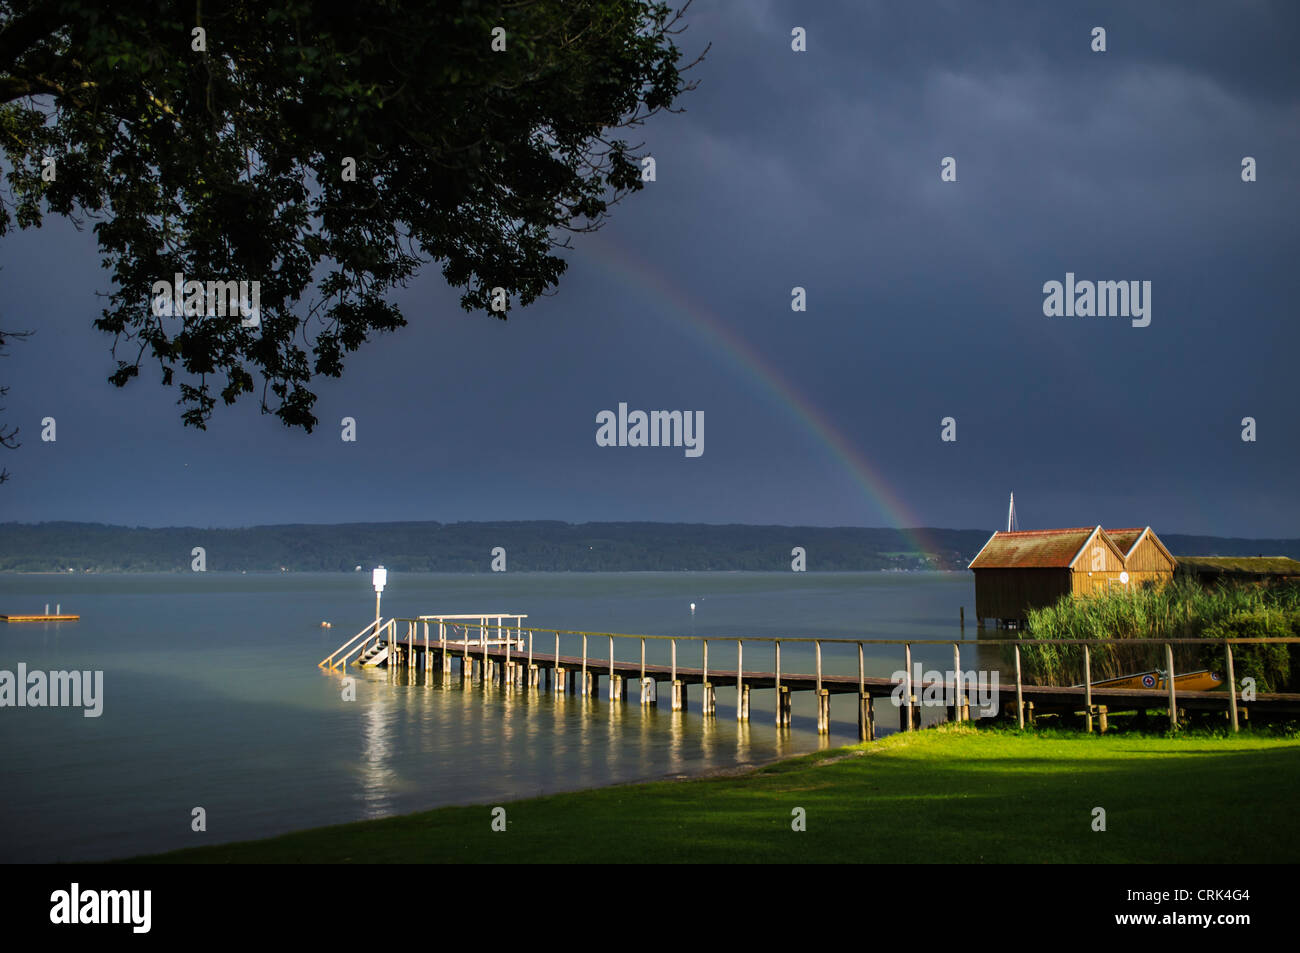 Wooden pier stretching into still water Stock Photo